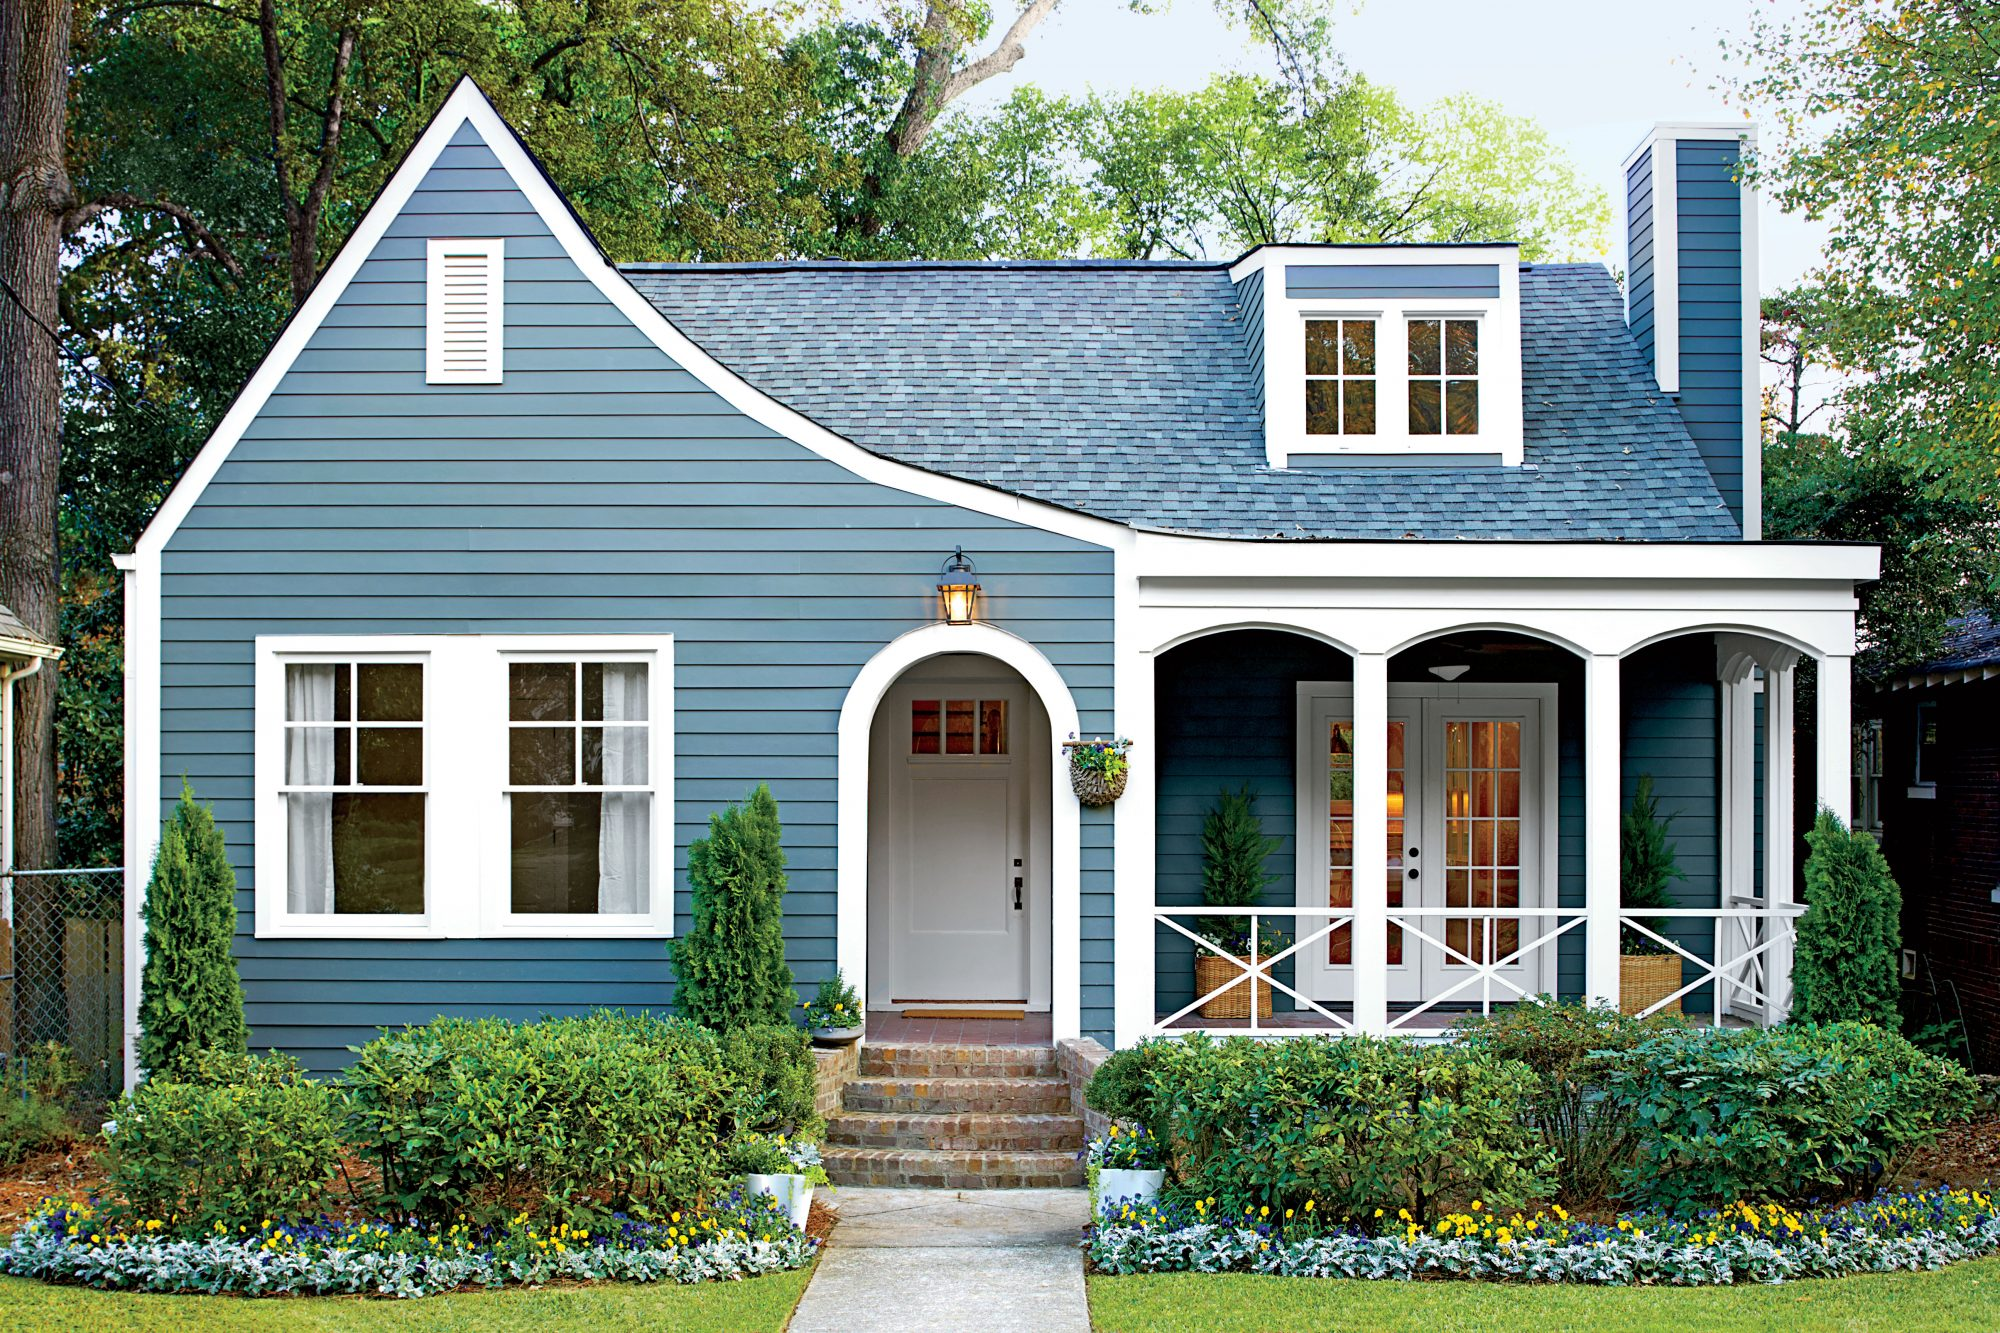 American Home Makeover charming home exteriors | southern living